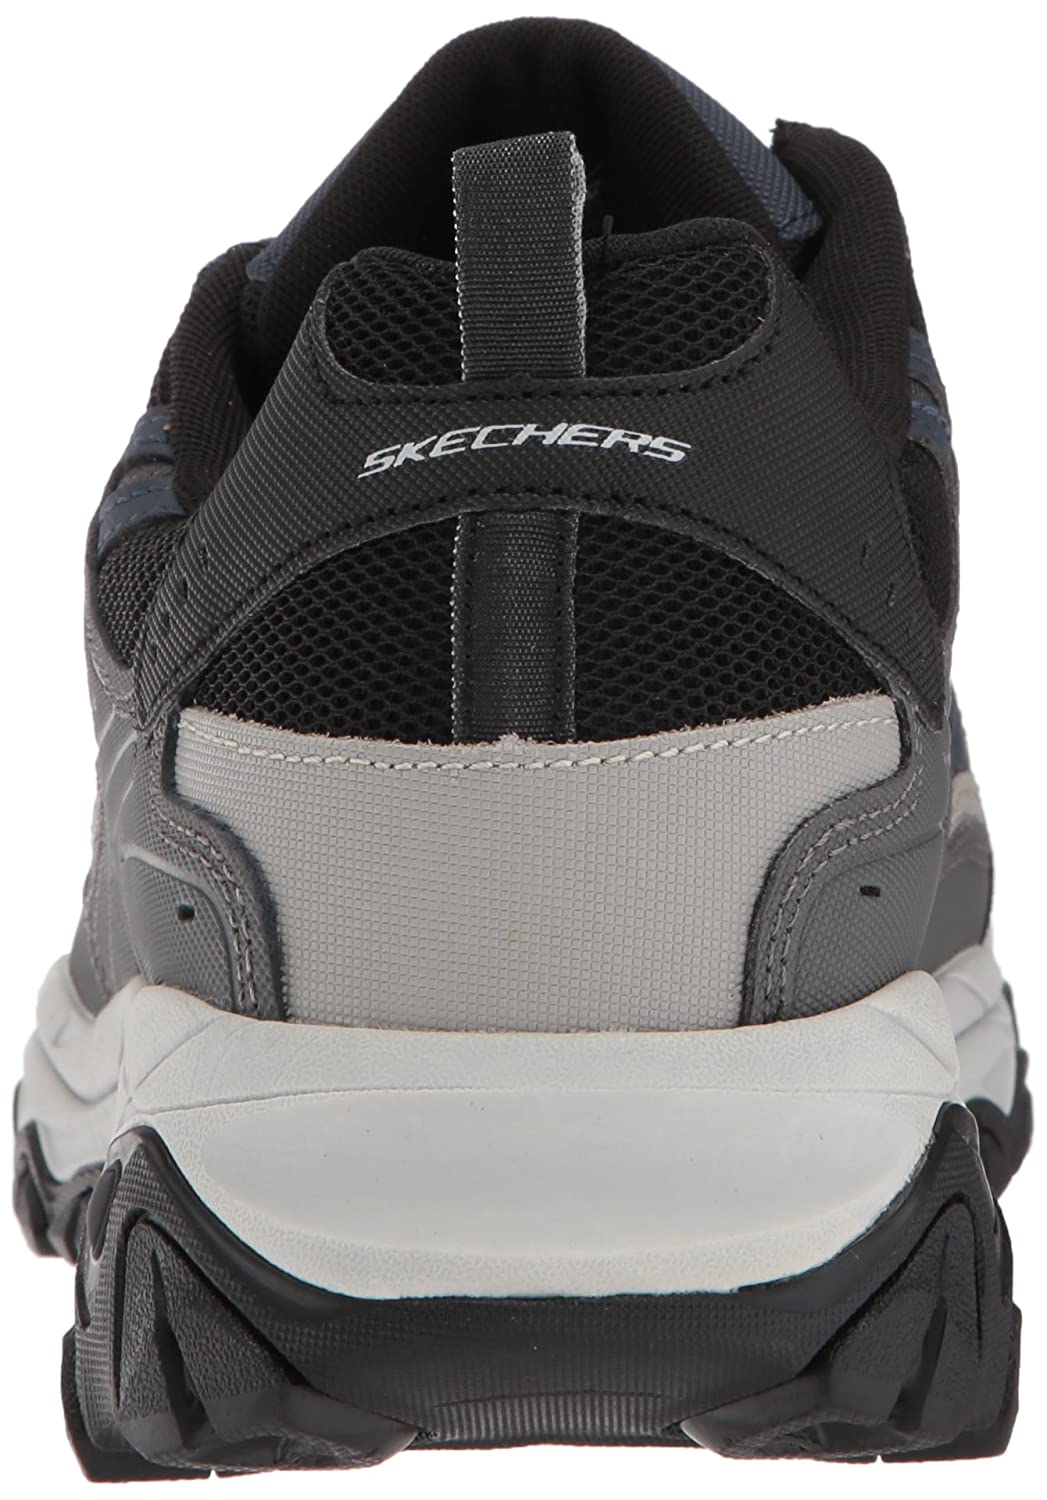 Skechers-Afterburn-Memory-Foam-M-Fit-Men-039-s-Sport-After-Burn-Sneakers-Shoes thumbnail 66